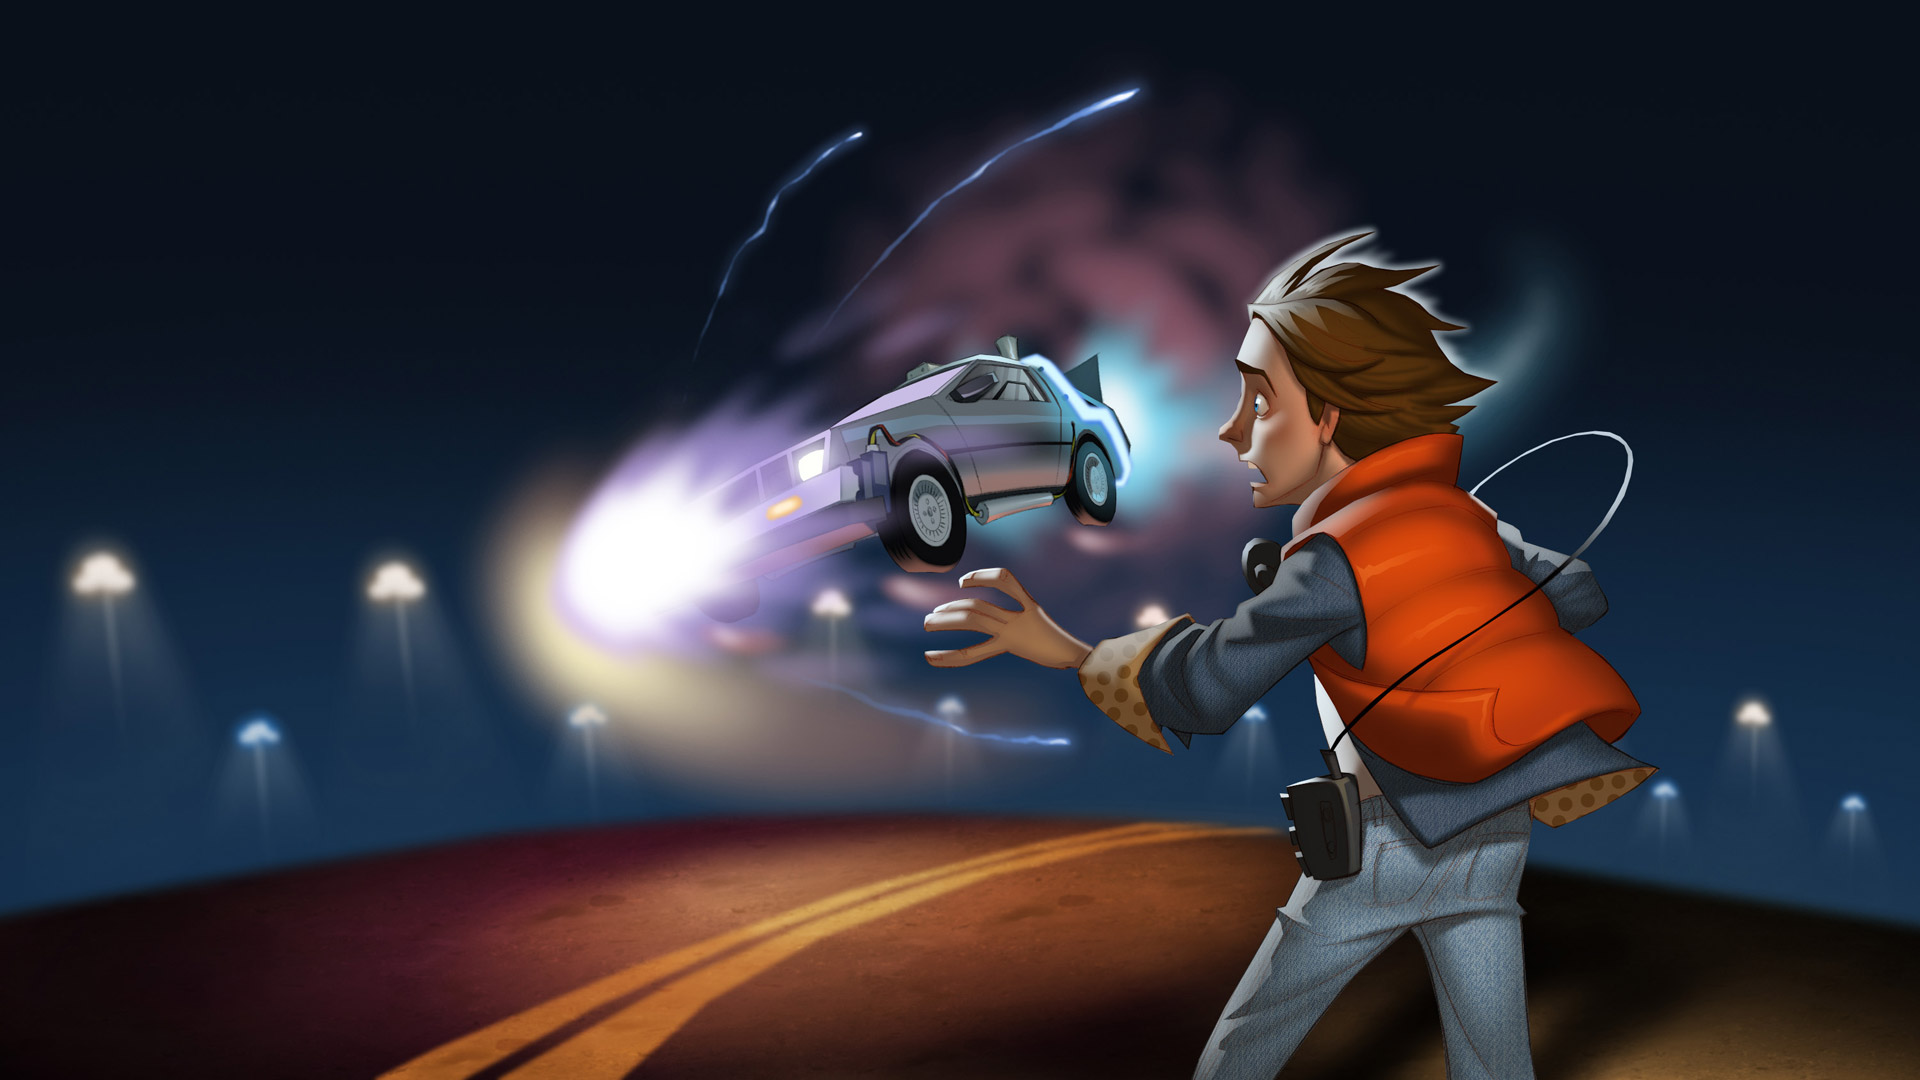 Back to the Future: The Game Wallpaper in 1920x1080